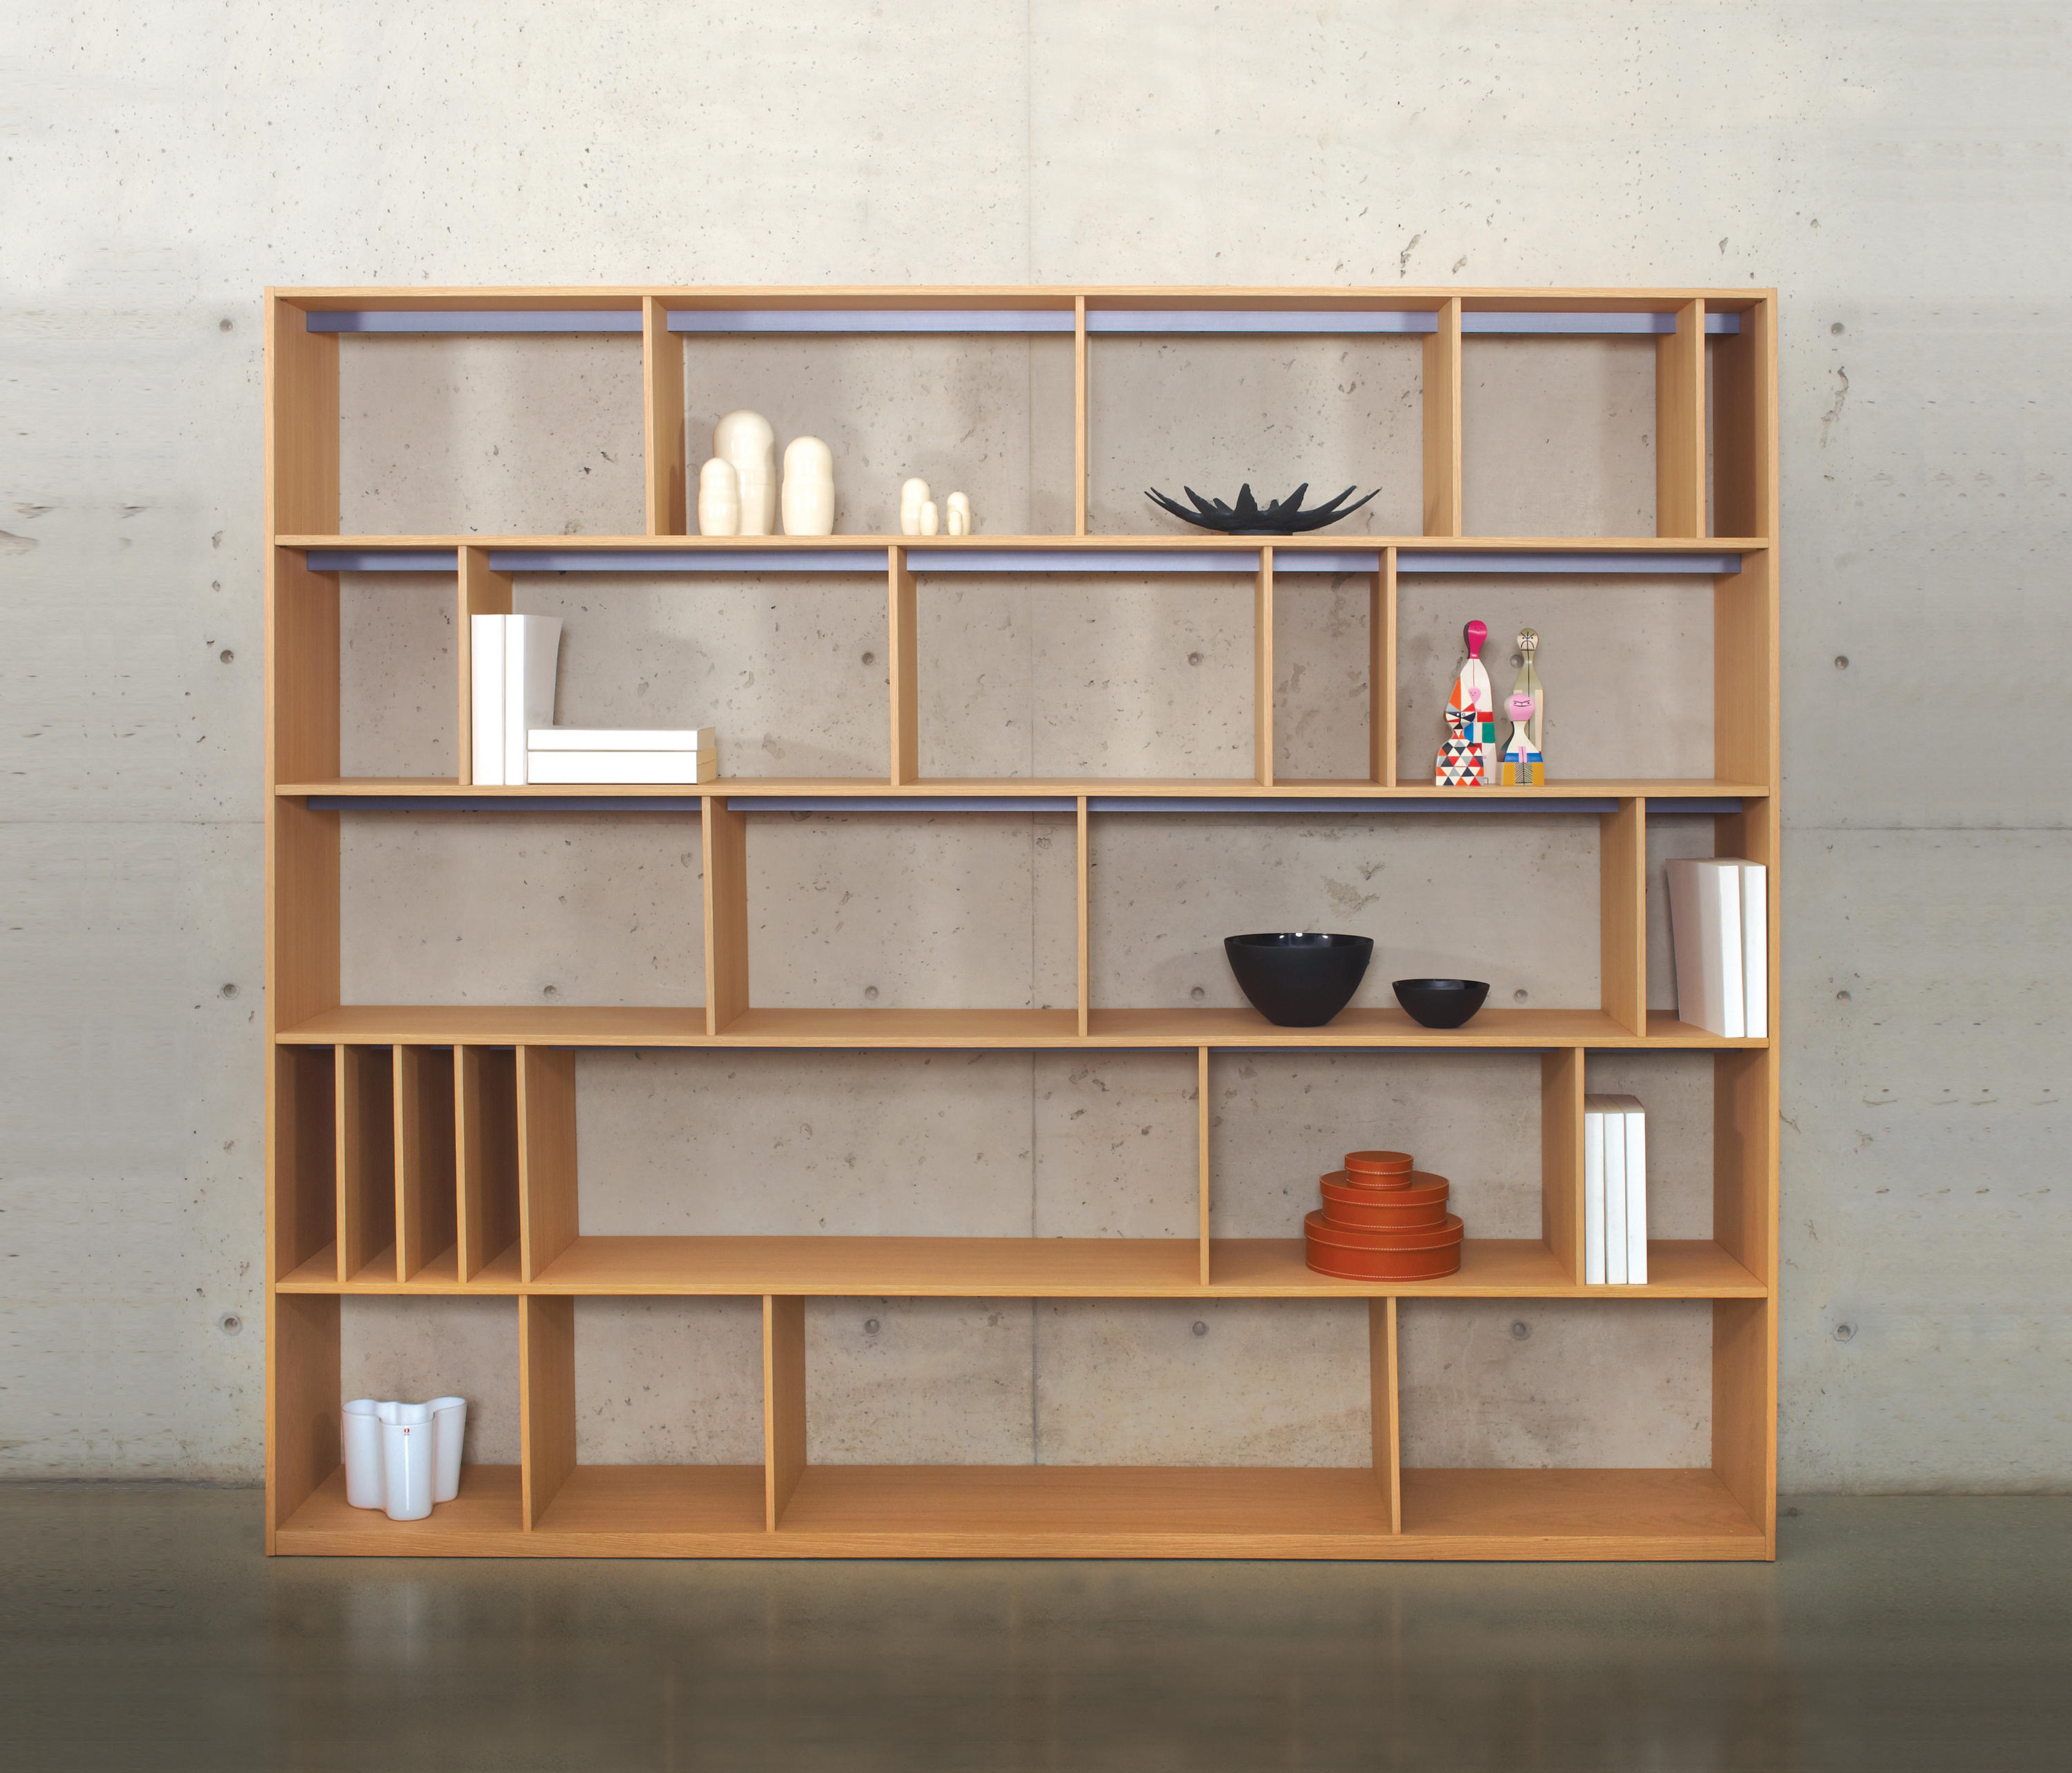 Bookcase room divider by bensen italy - creative furniture d.